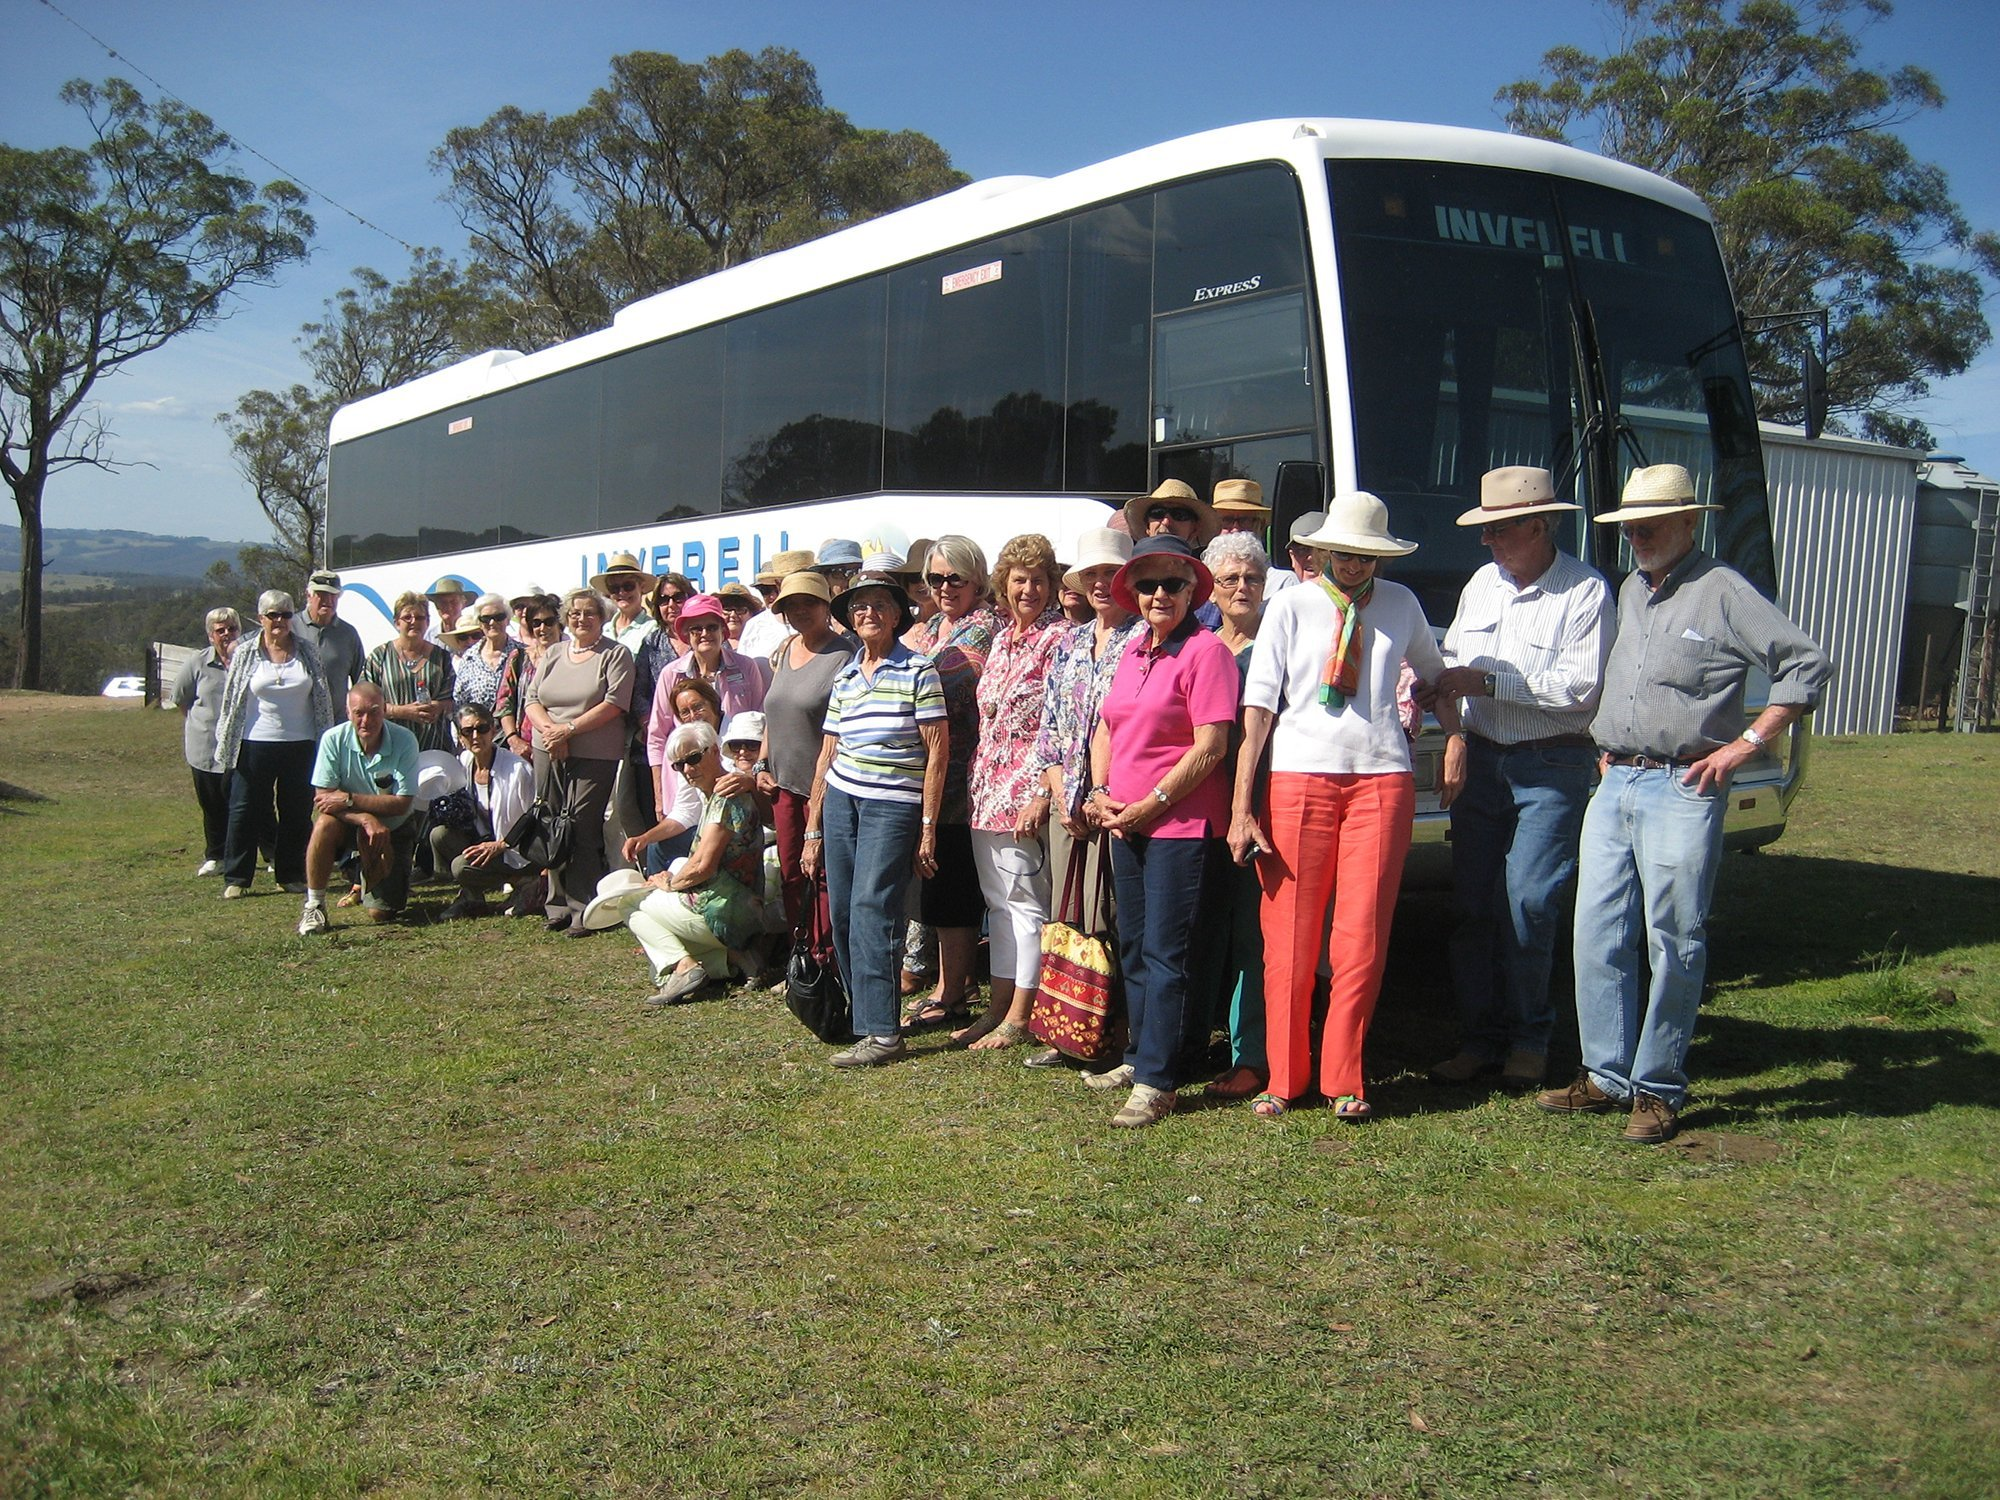 Group of tourist standing in front of bus